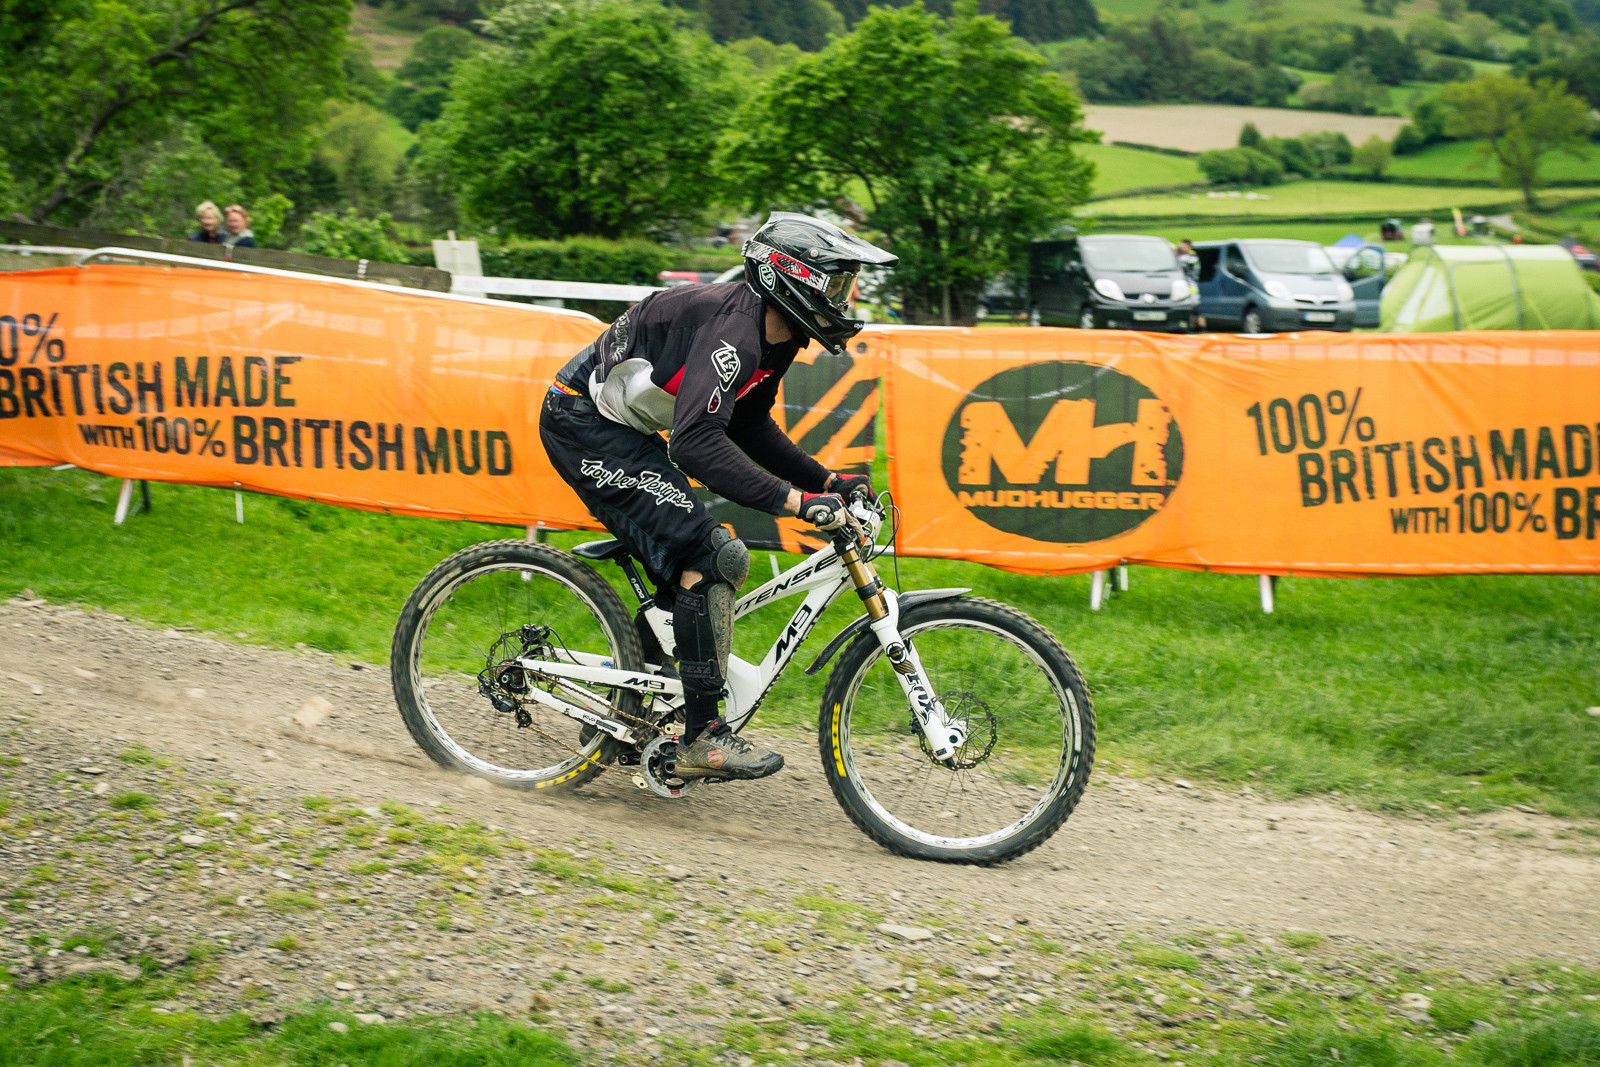 Intense M9 G-ed Out at Llangollen - G-Out Project - Llangollen BDS 2015 - Mountain Biking Pictures - Vital MTB